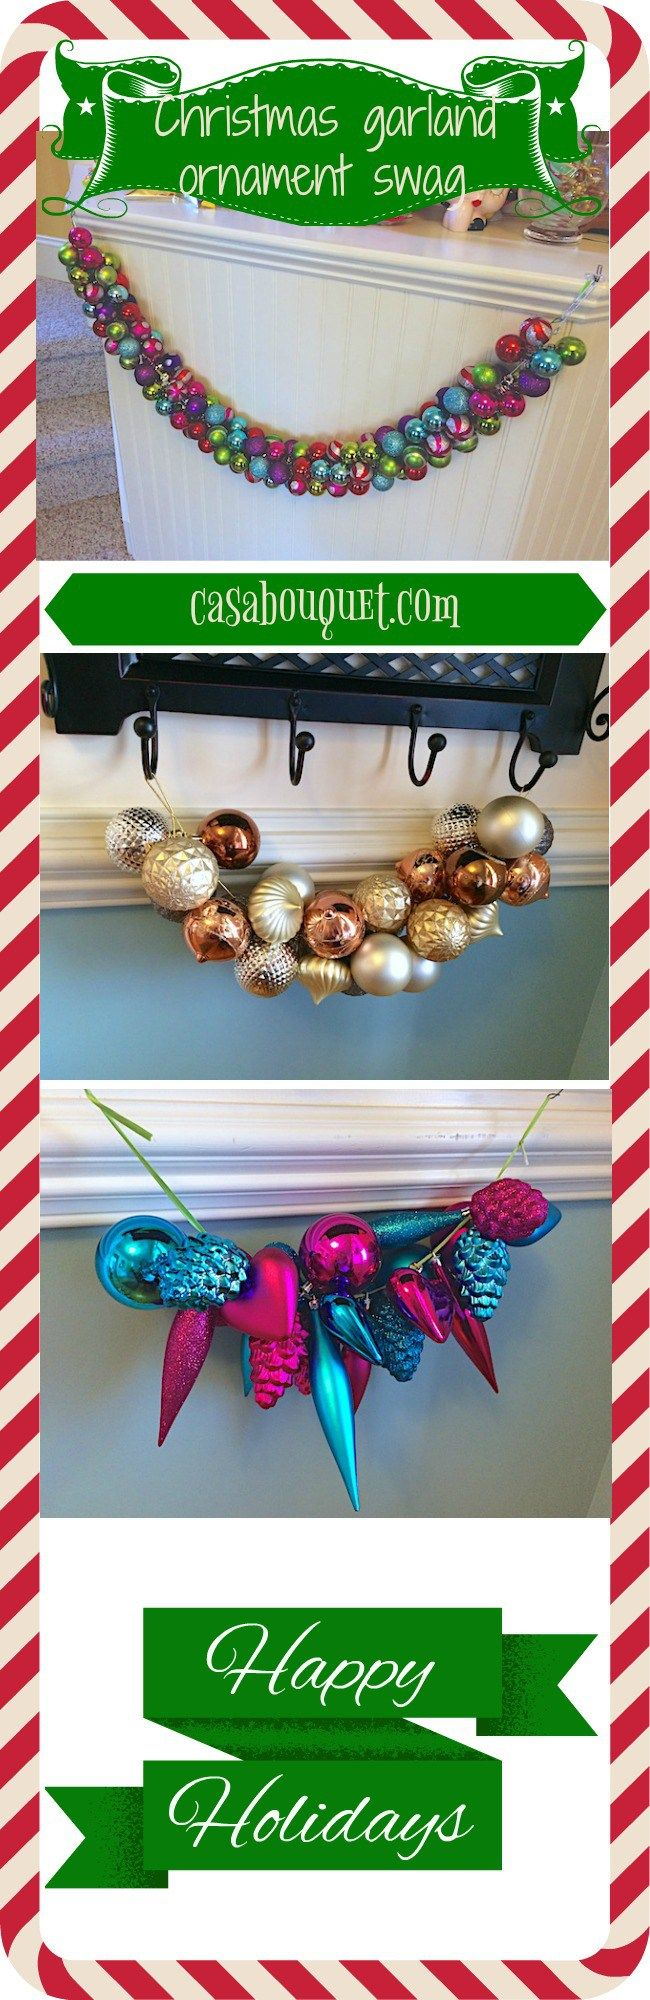 plastic wreaths how to make them